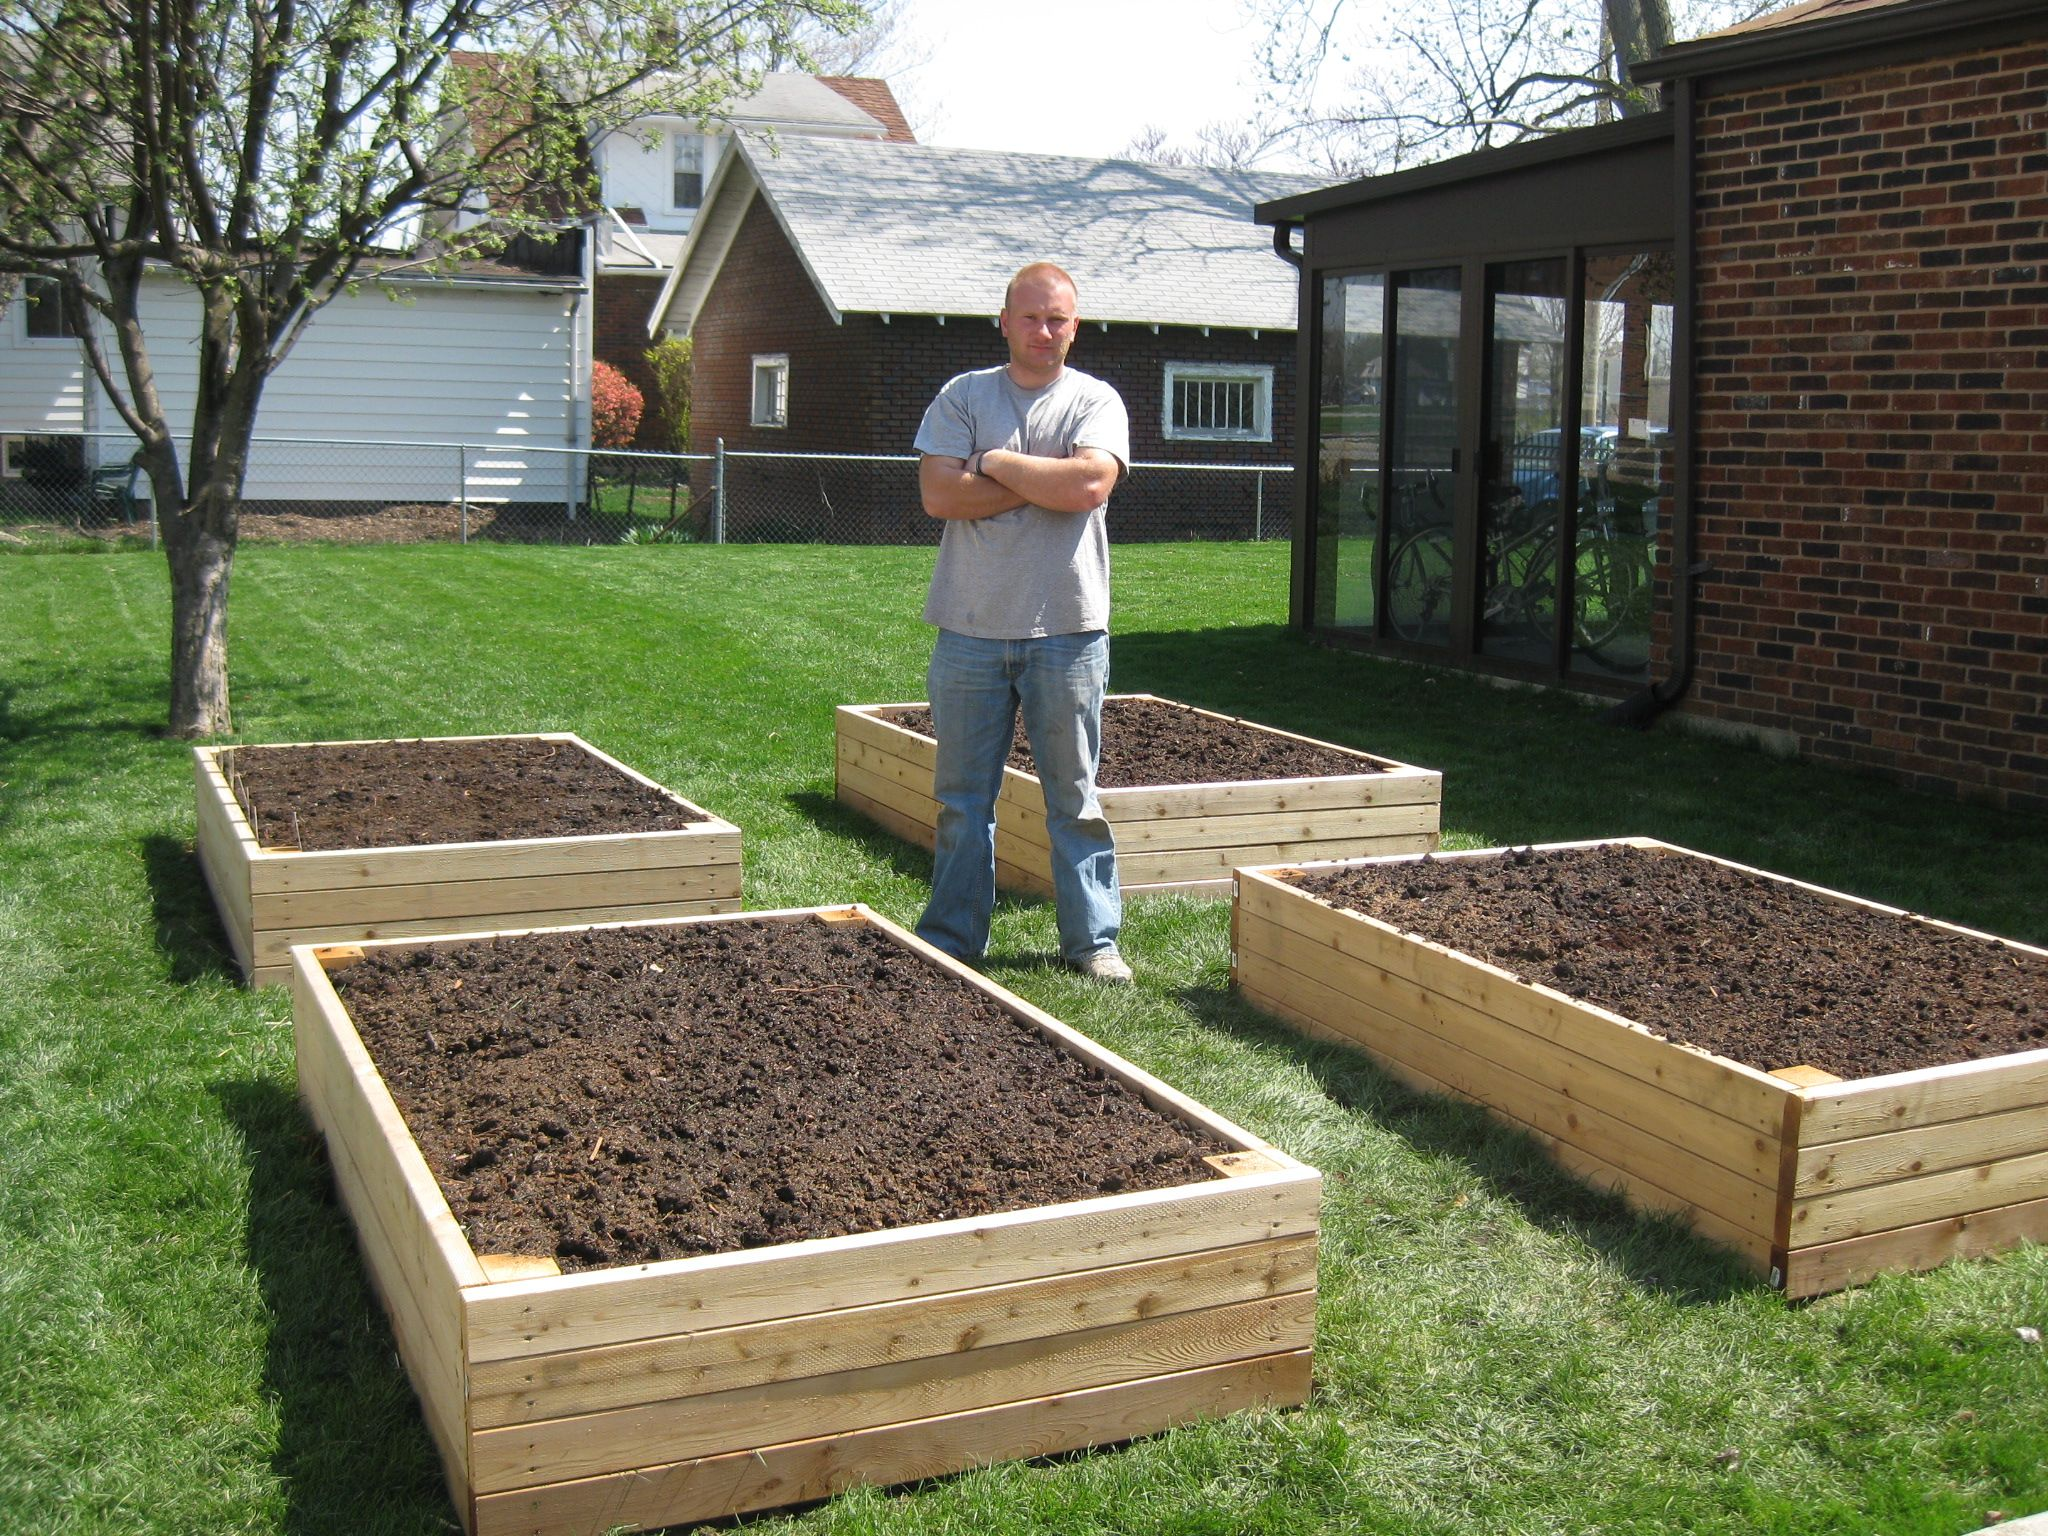 Best 20 Garden box plans ideas on Pinterest Vegetable garden